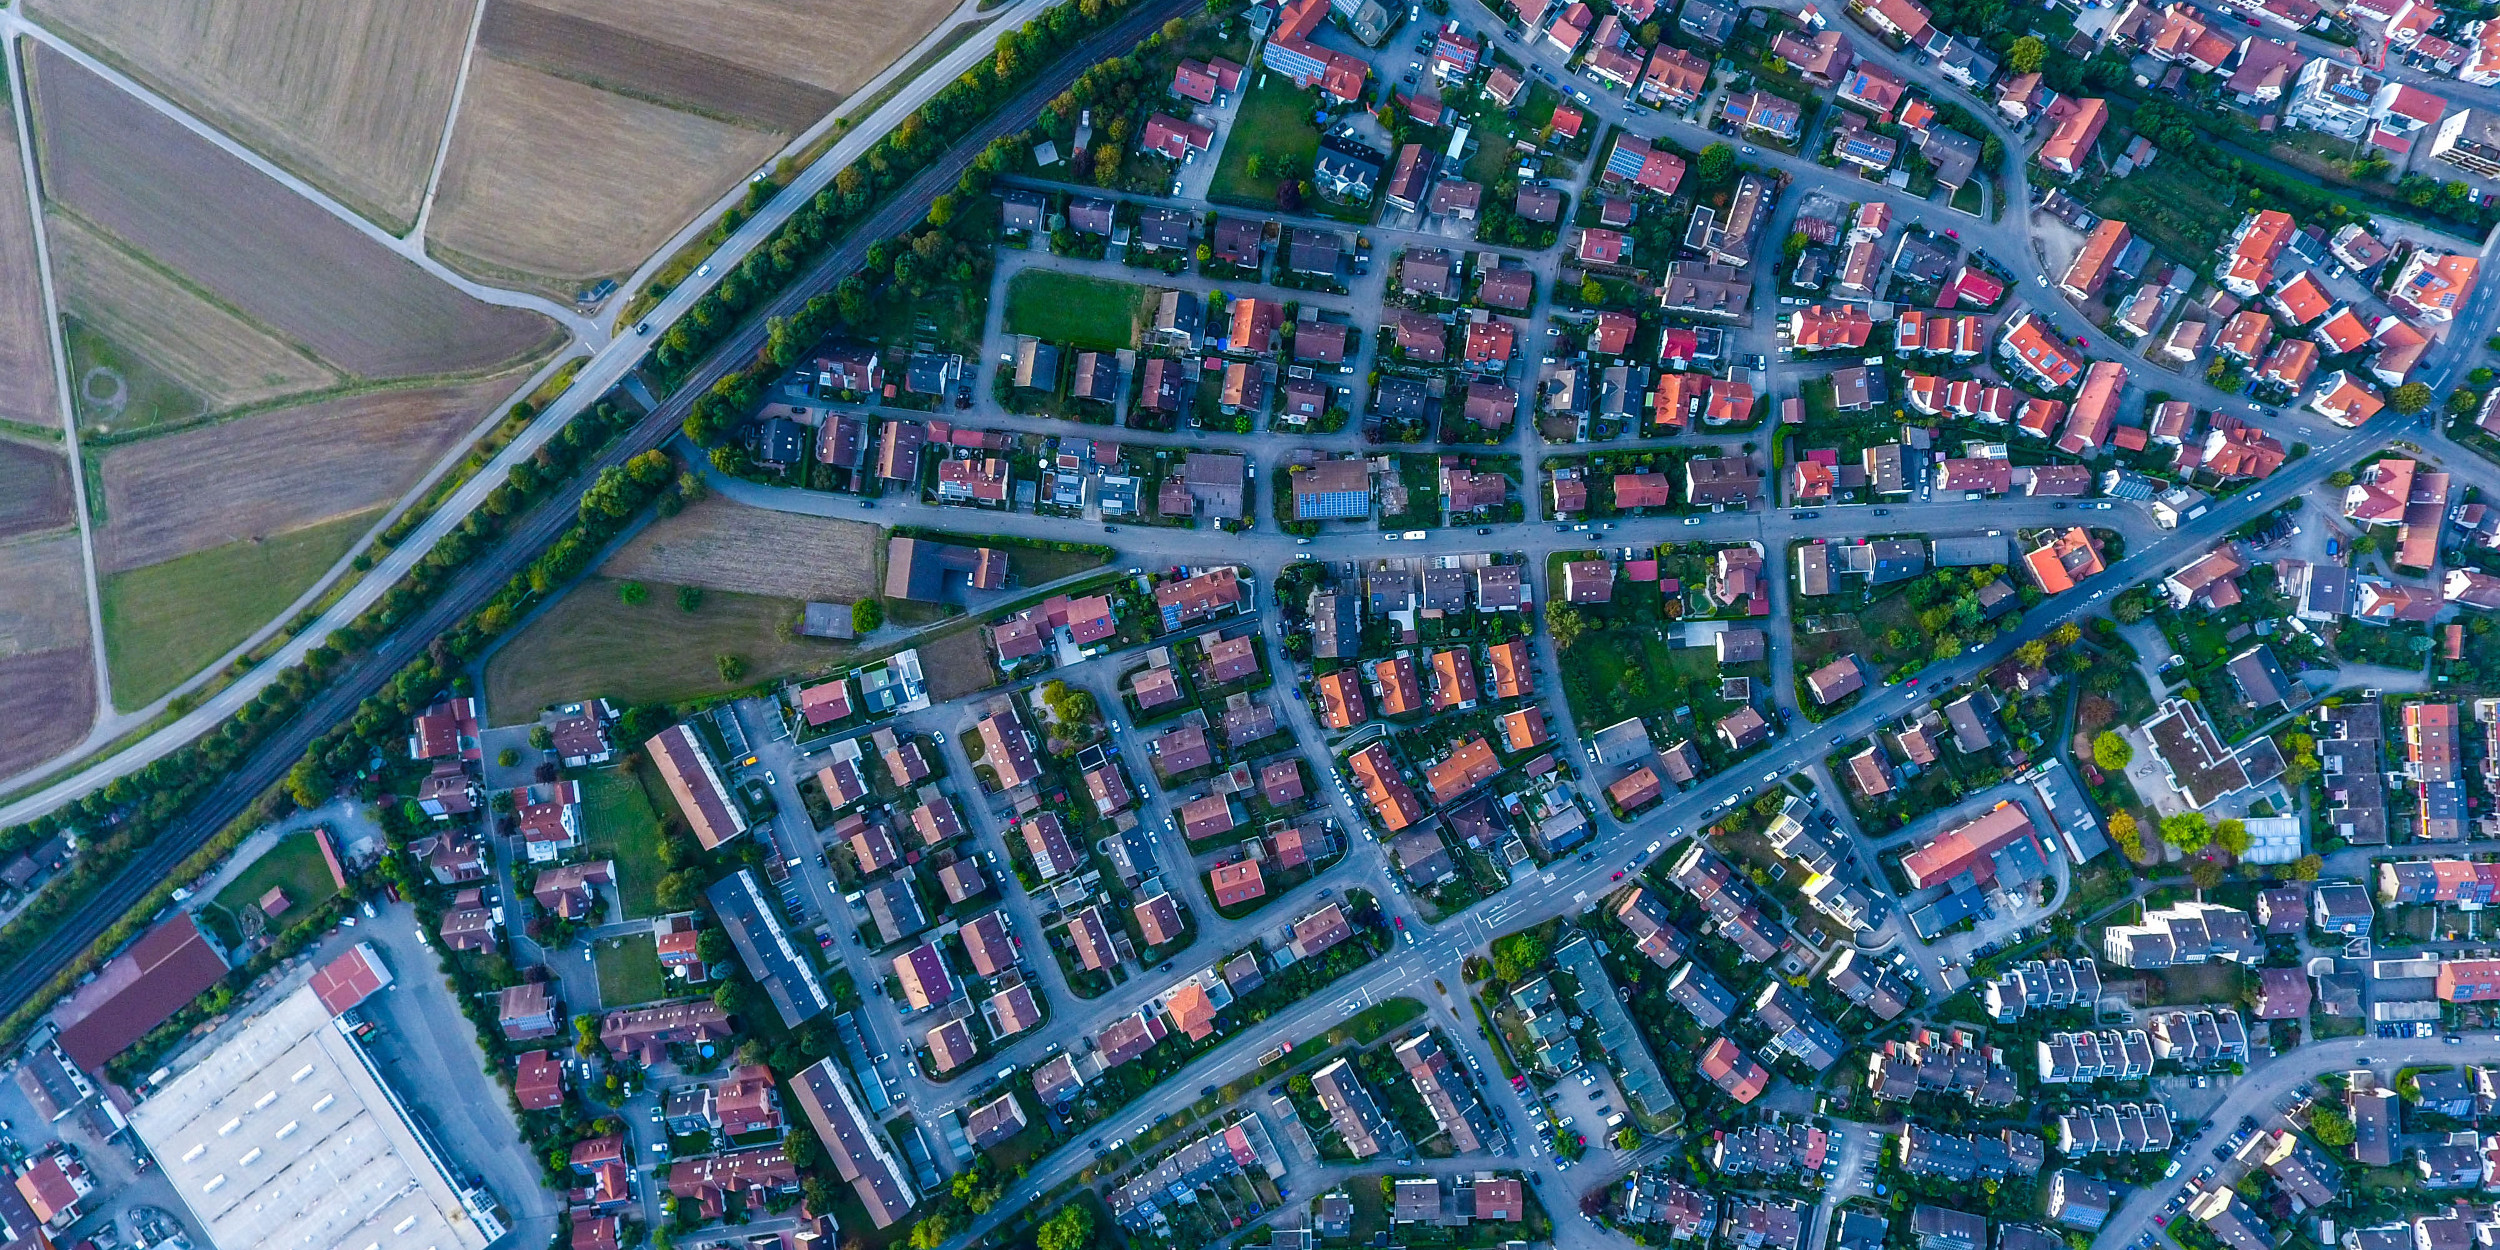 Image: Contrast between highly dense and rural areas in Ehningen, Germany. Max Böttinger, Unsplash.